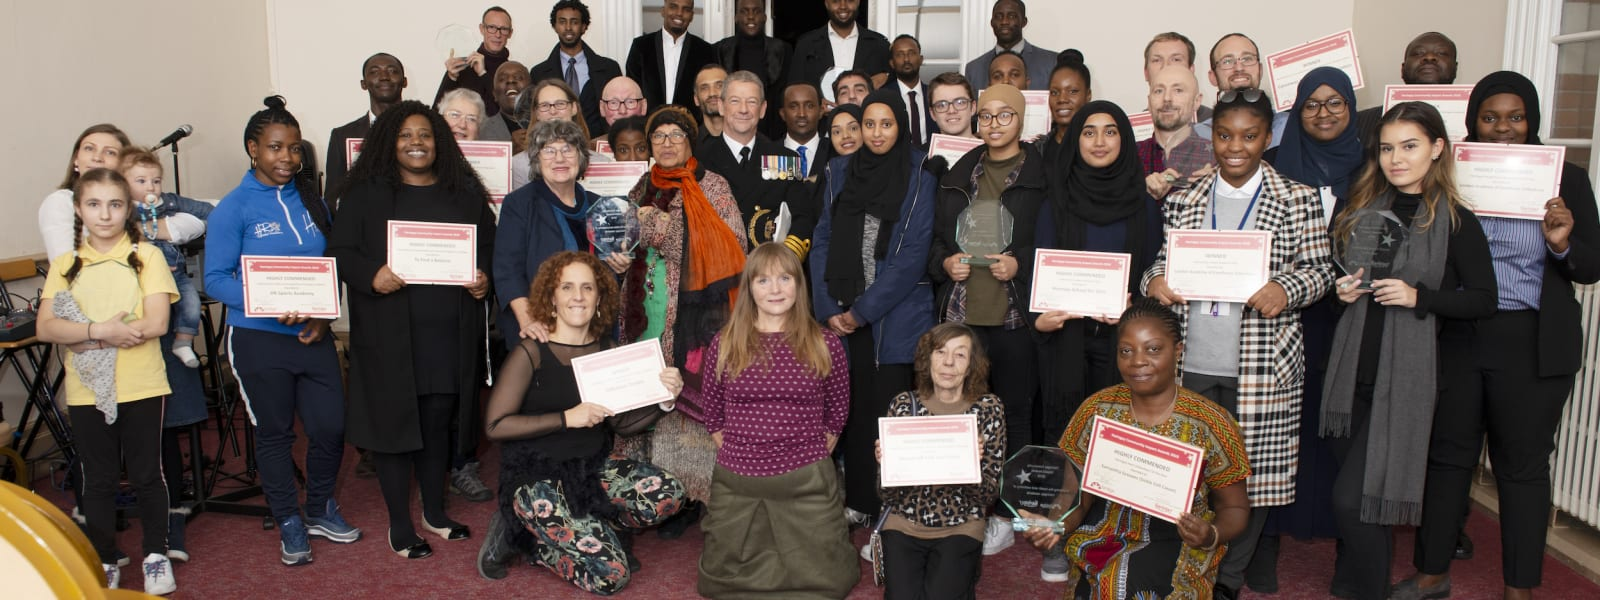 Haringey Community Impact Awards 2019